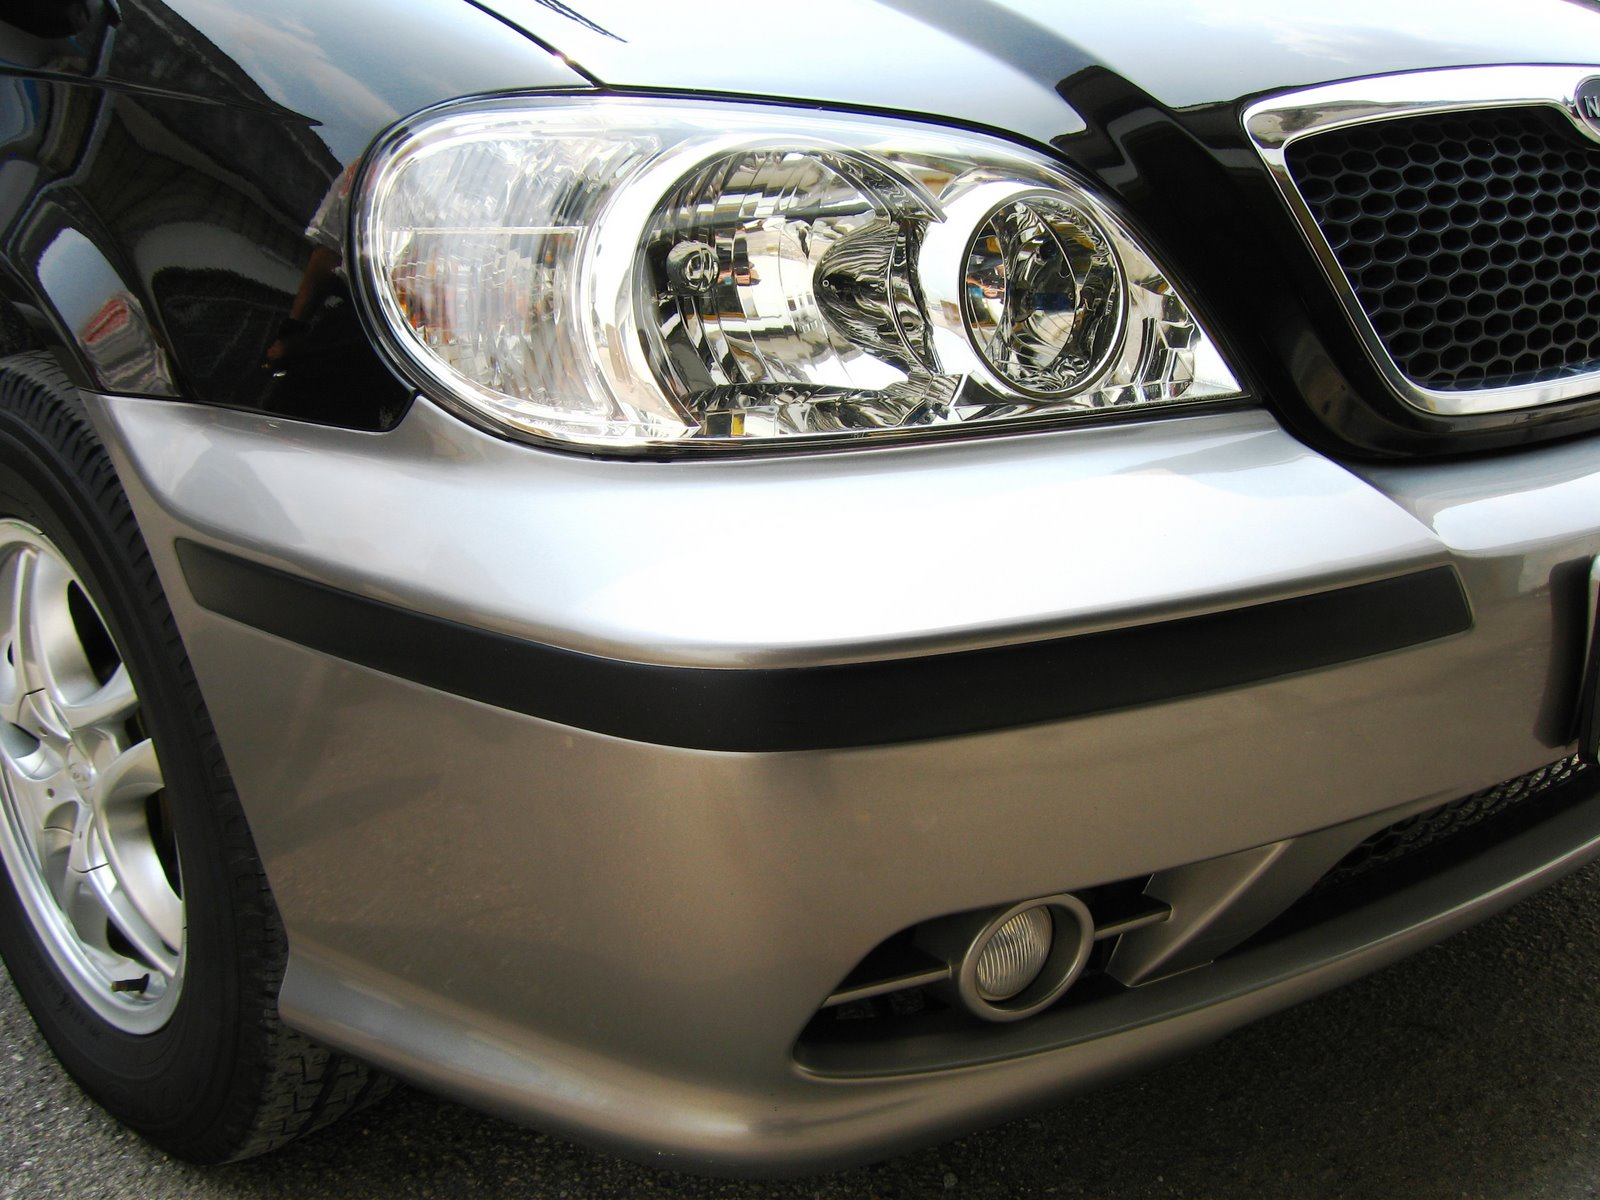 The Real Car Paint Protection Make Your Car Extreme Shine